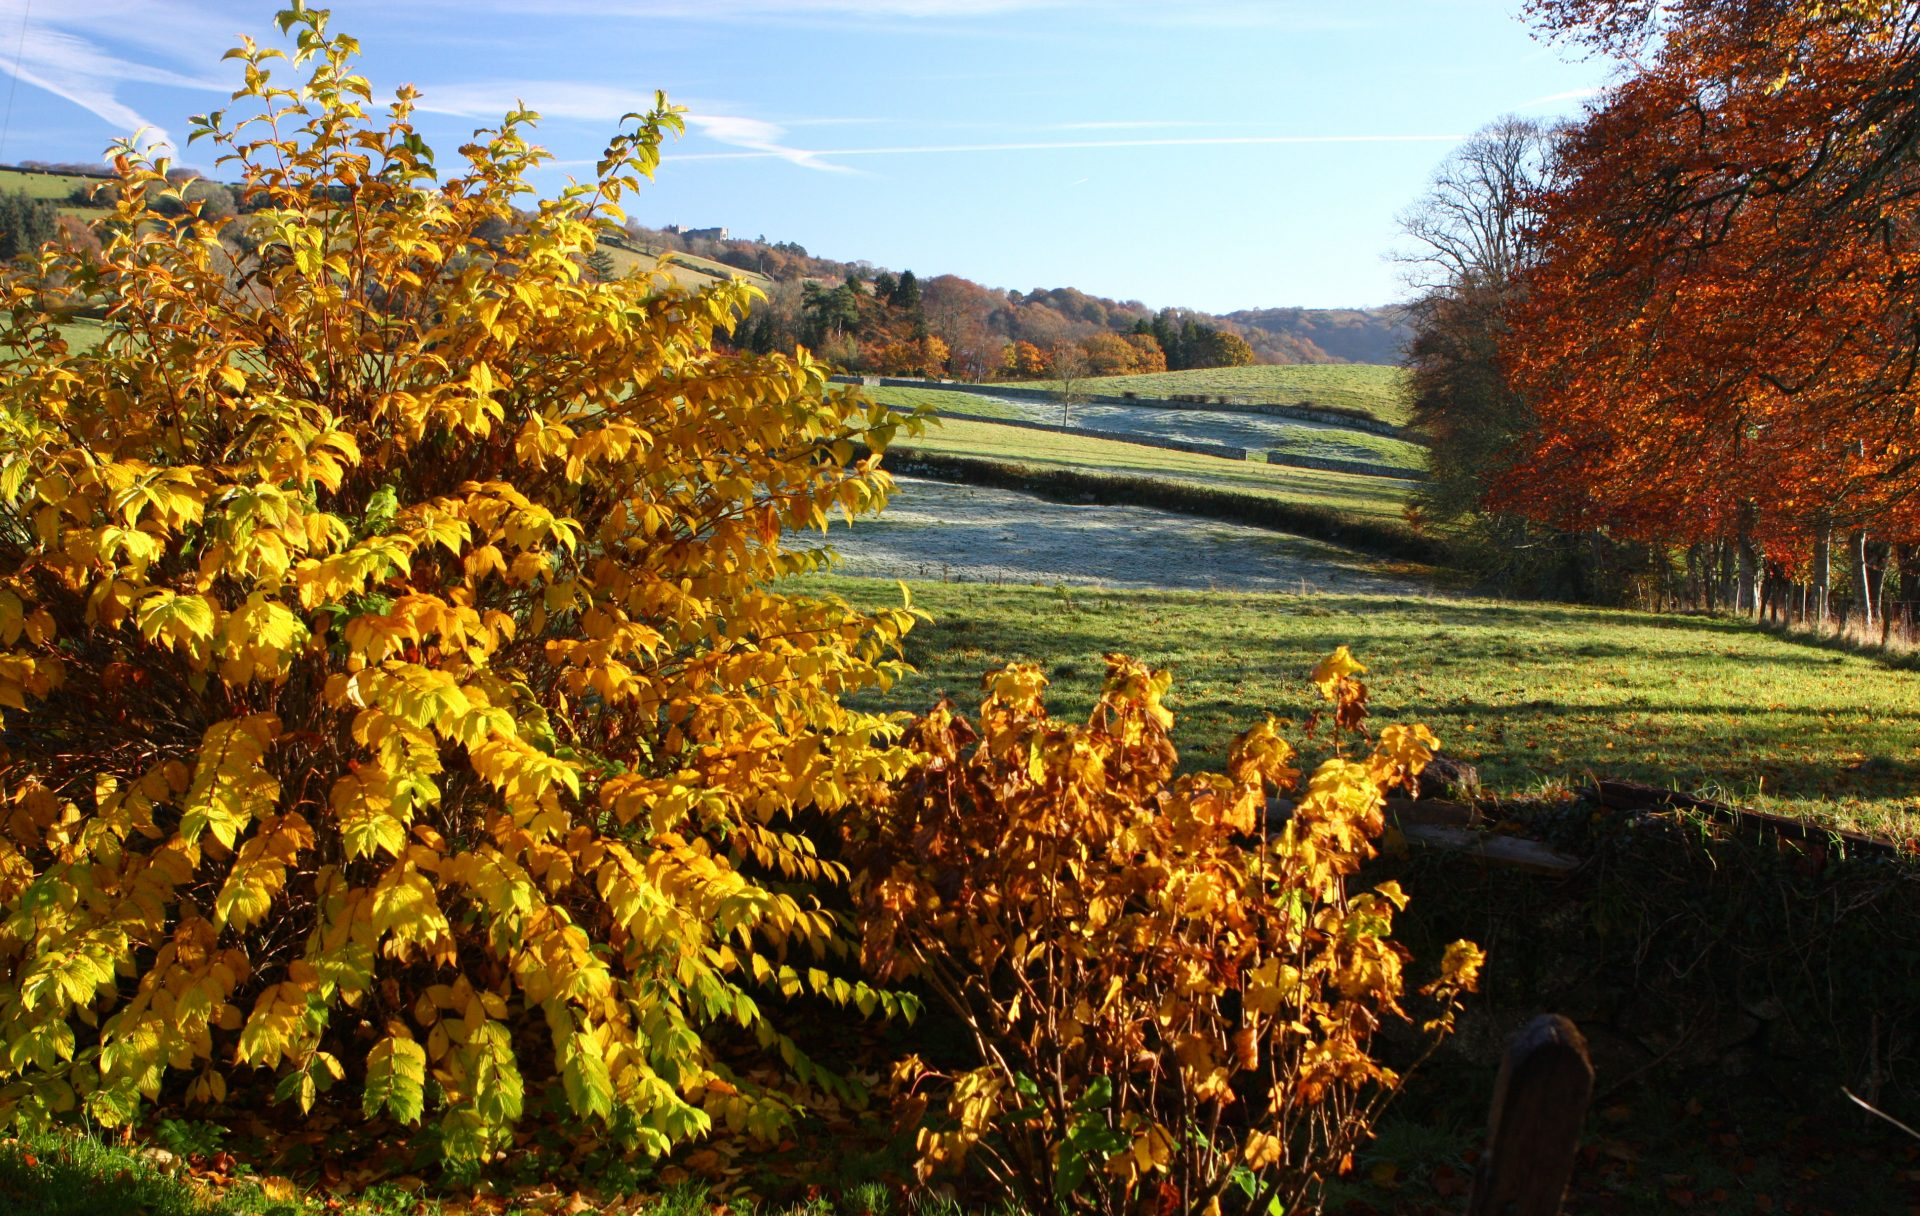 ... and this was the view from our garden.